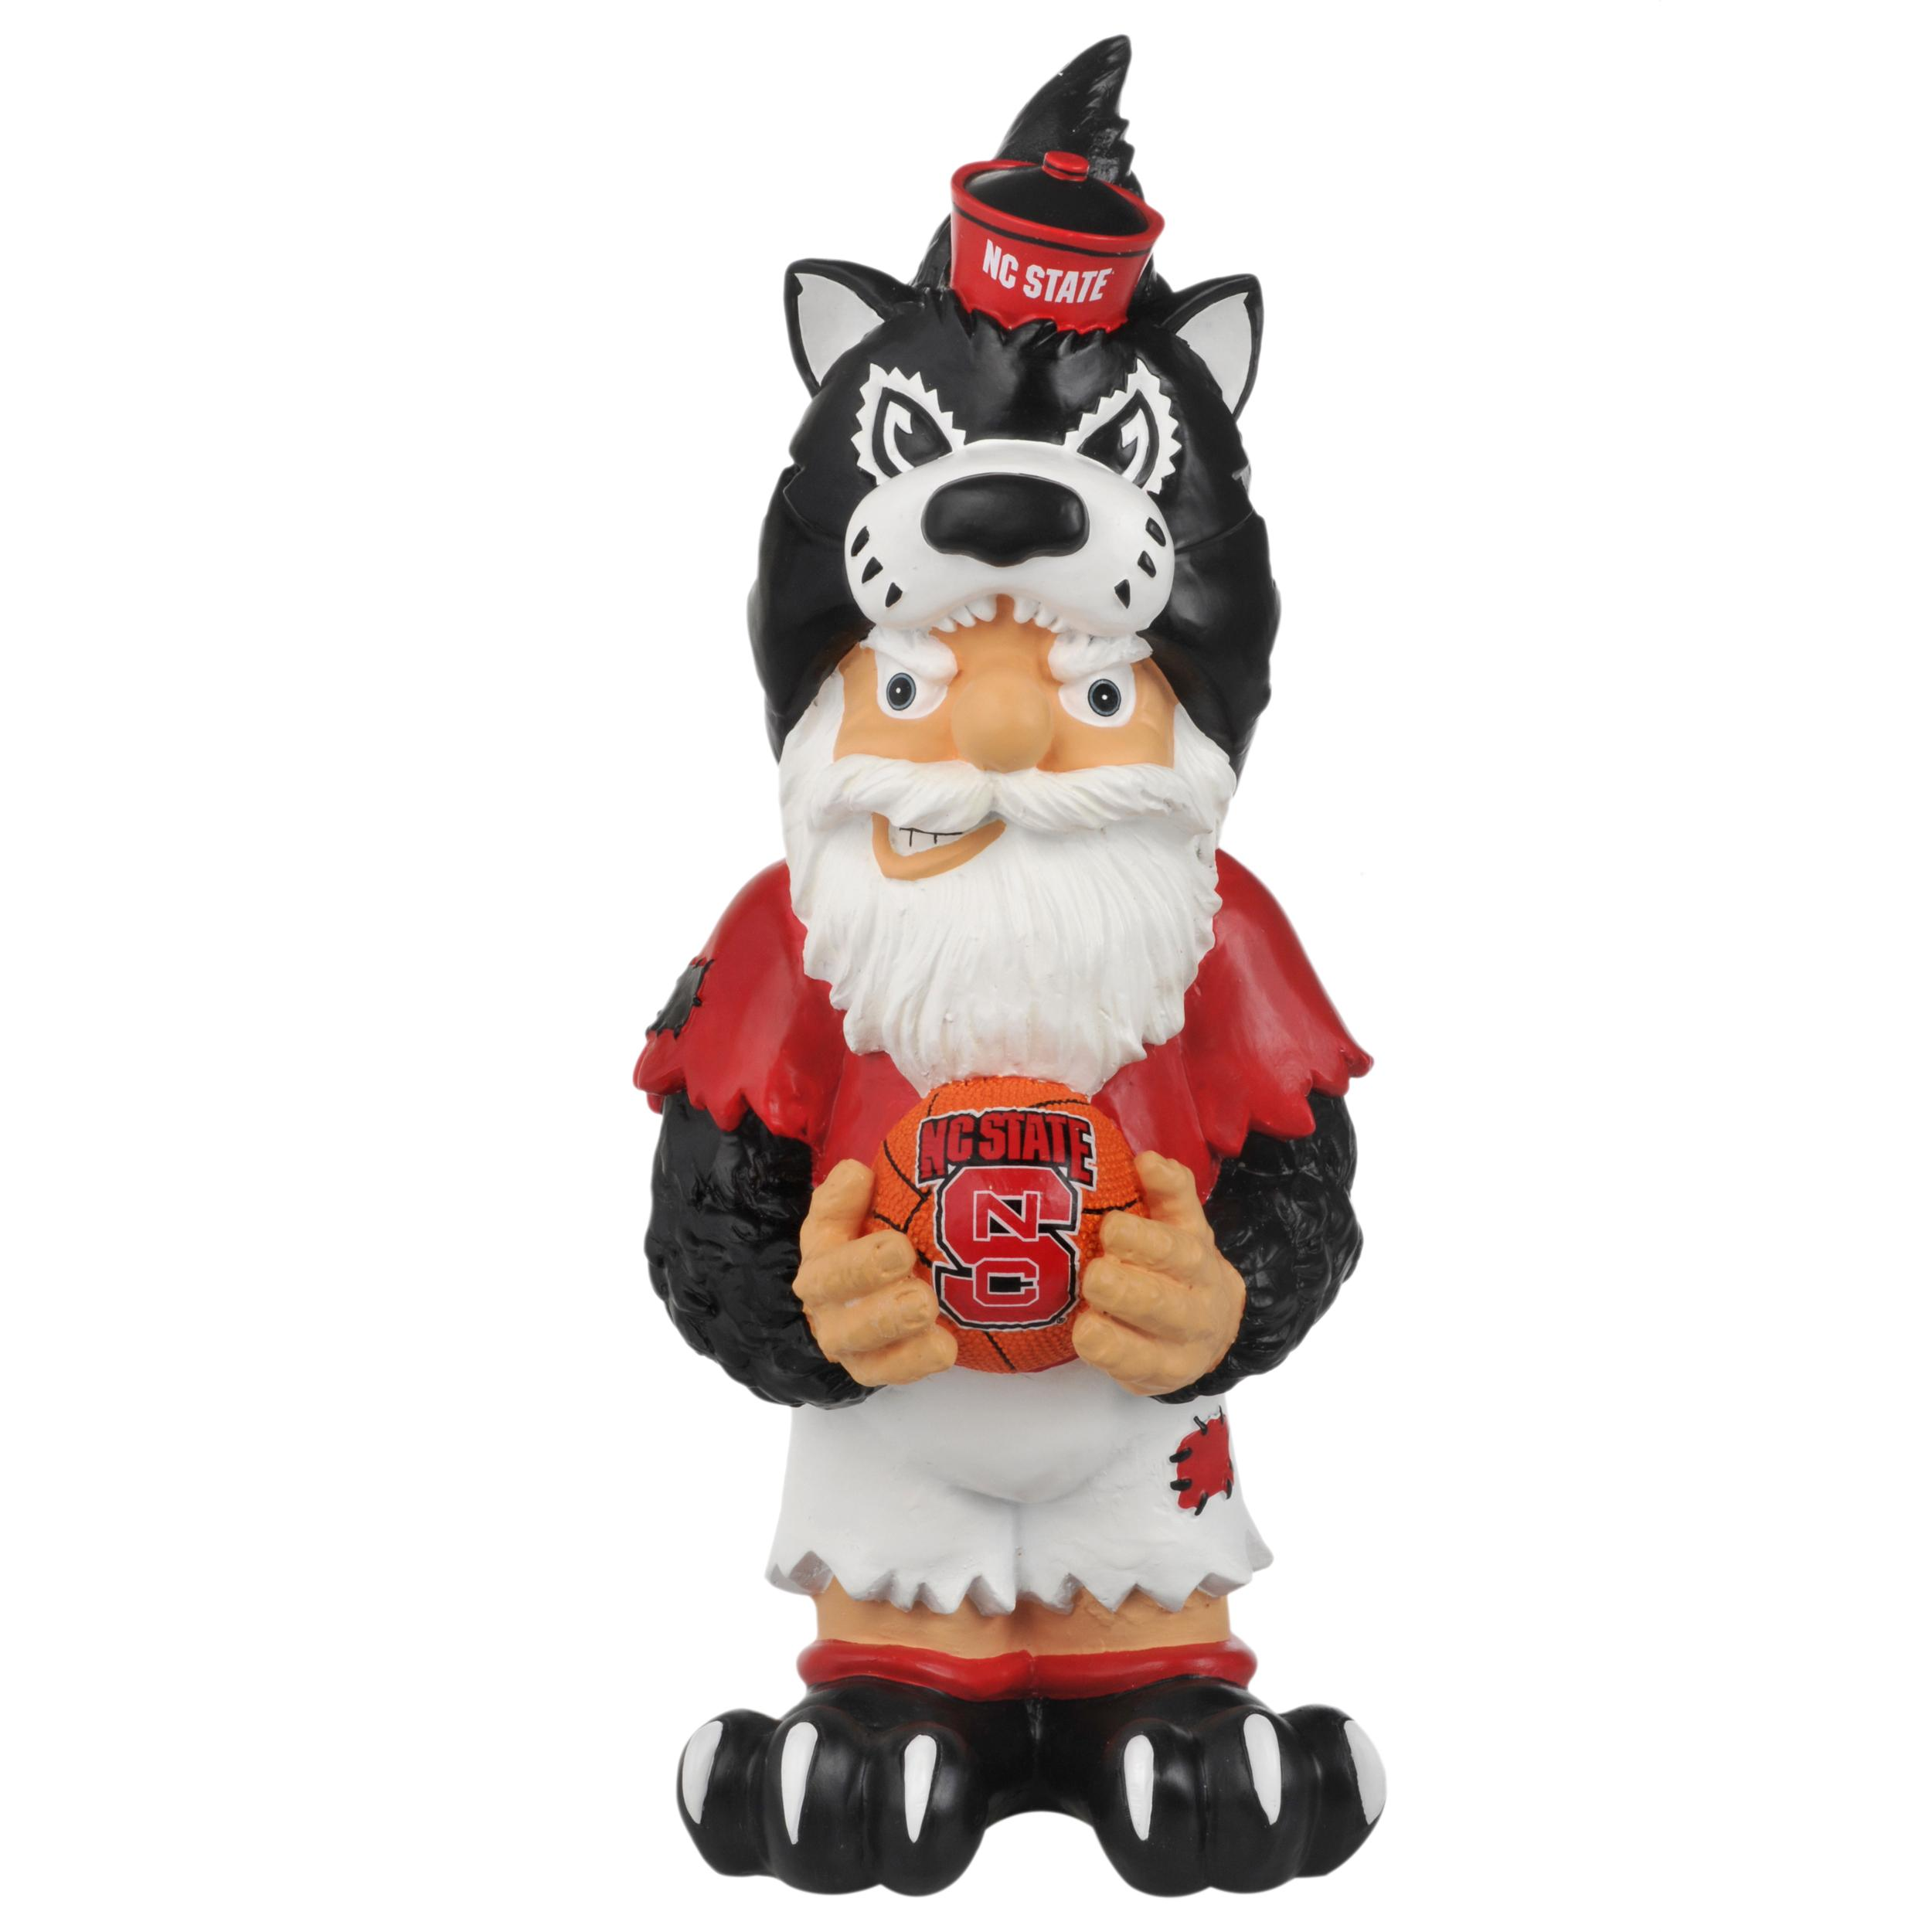 North Carolina State Wolfpack 11-inch Thematic Garden Gnome - Thumbnail 2